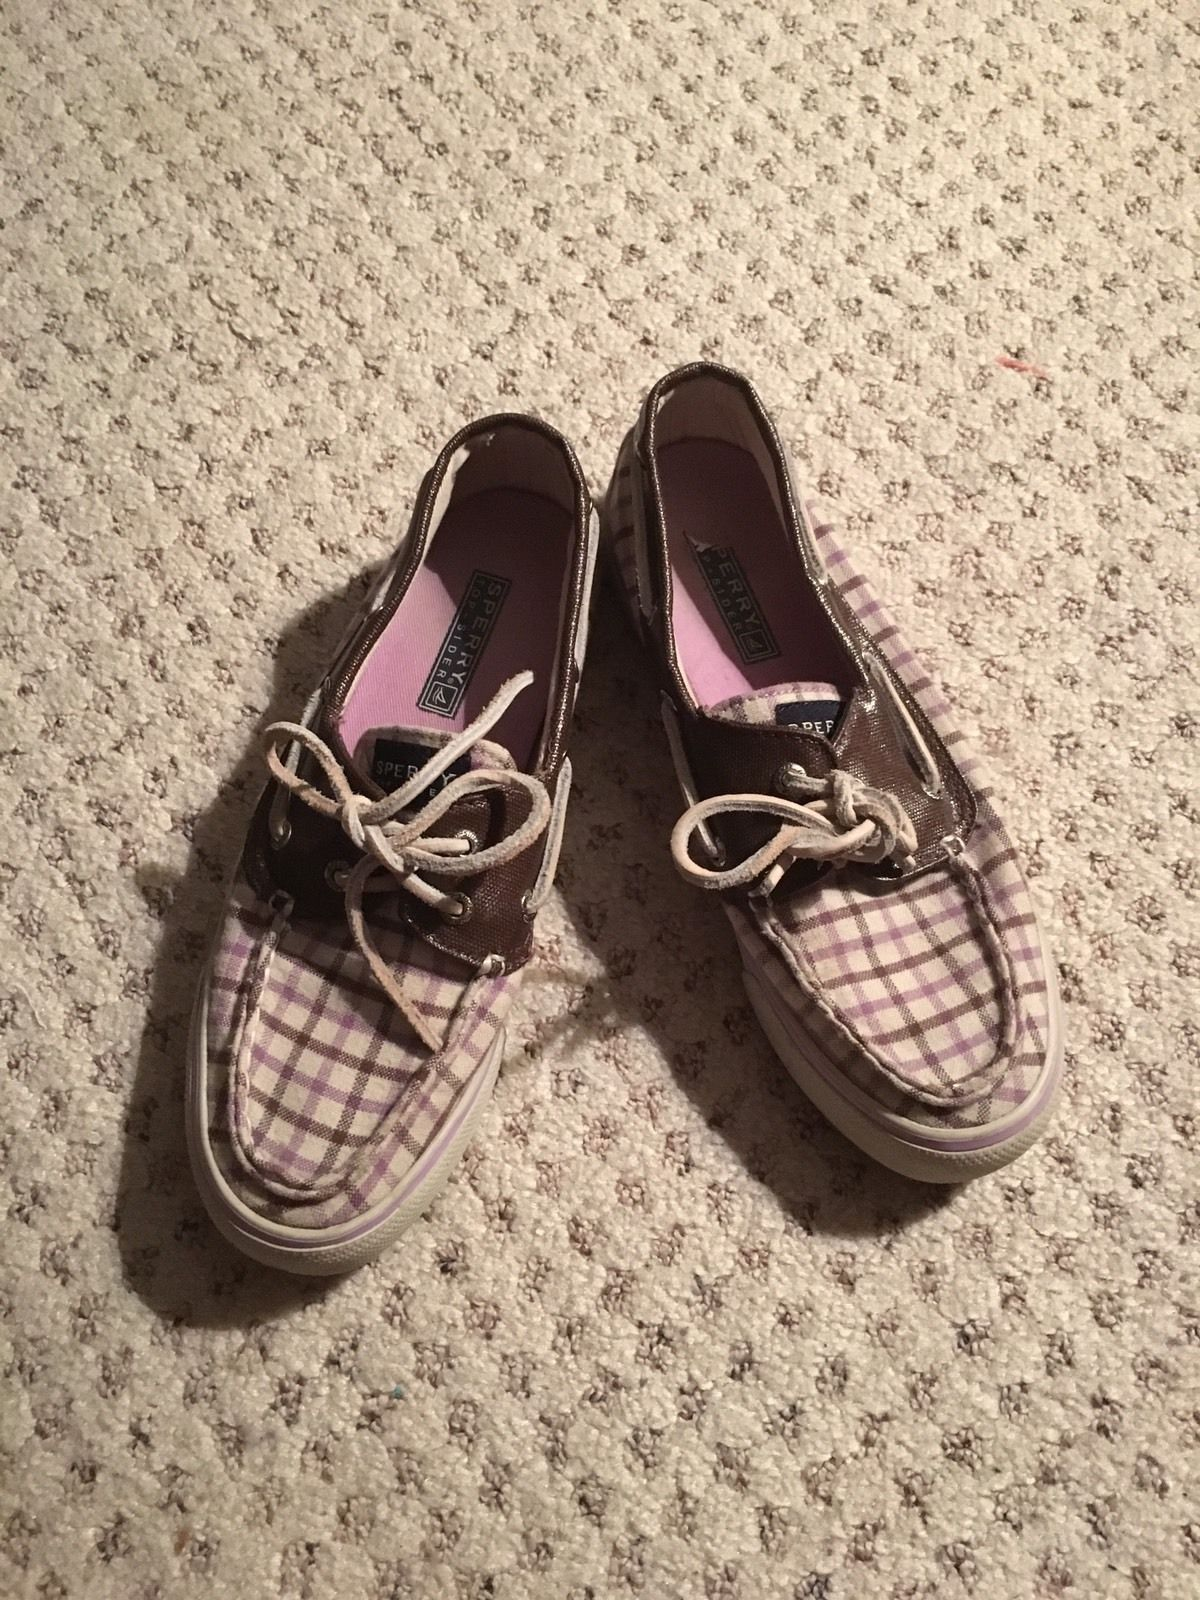 8af62f19a24 Women s Sperry Top-Sider Purple Plaid and 38 similar items. S l1600